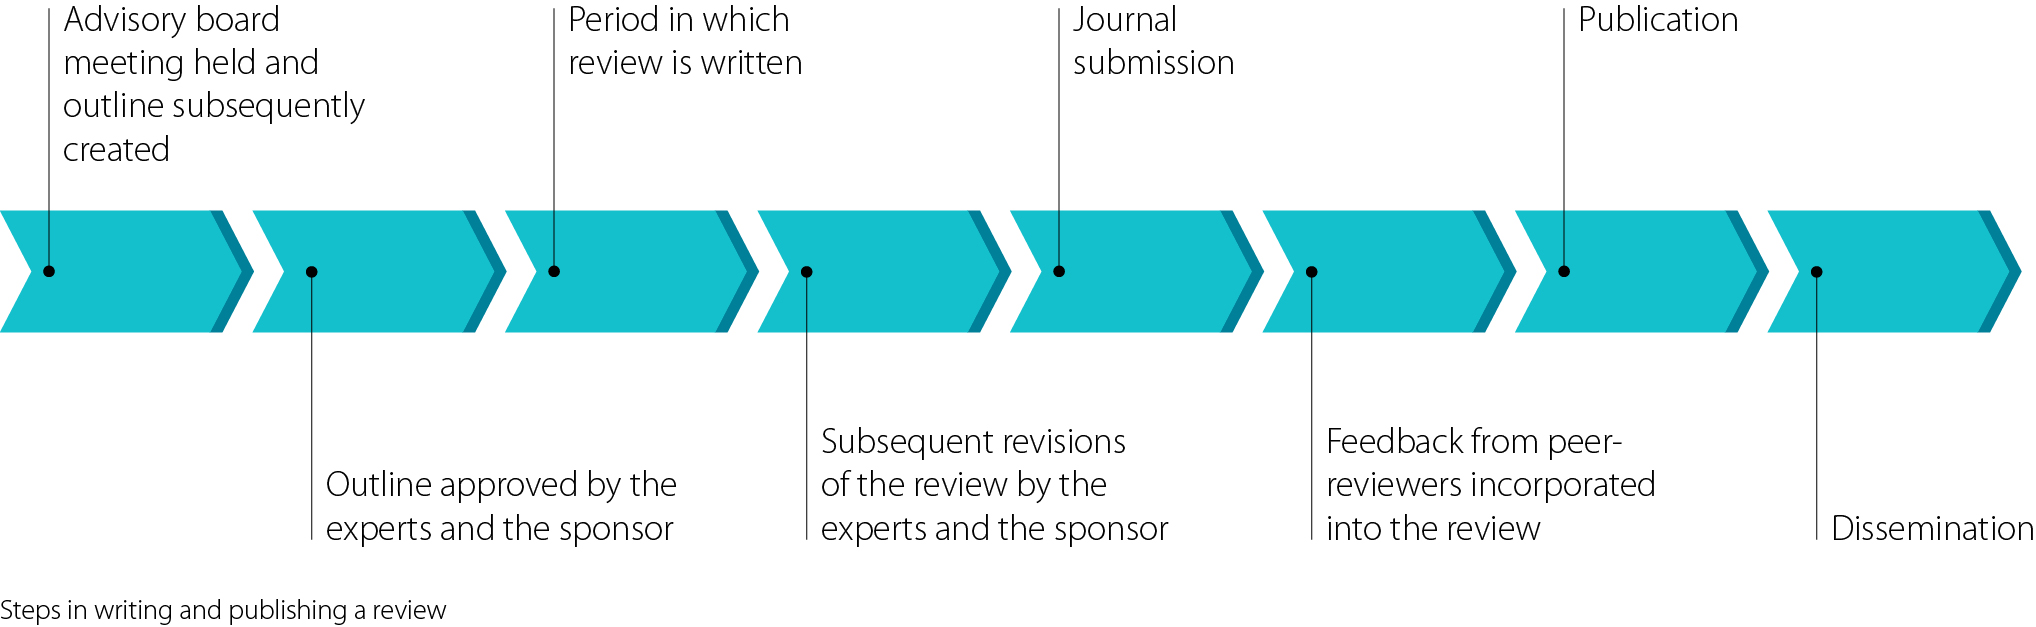 steps in writing and publishing a medical review